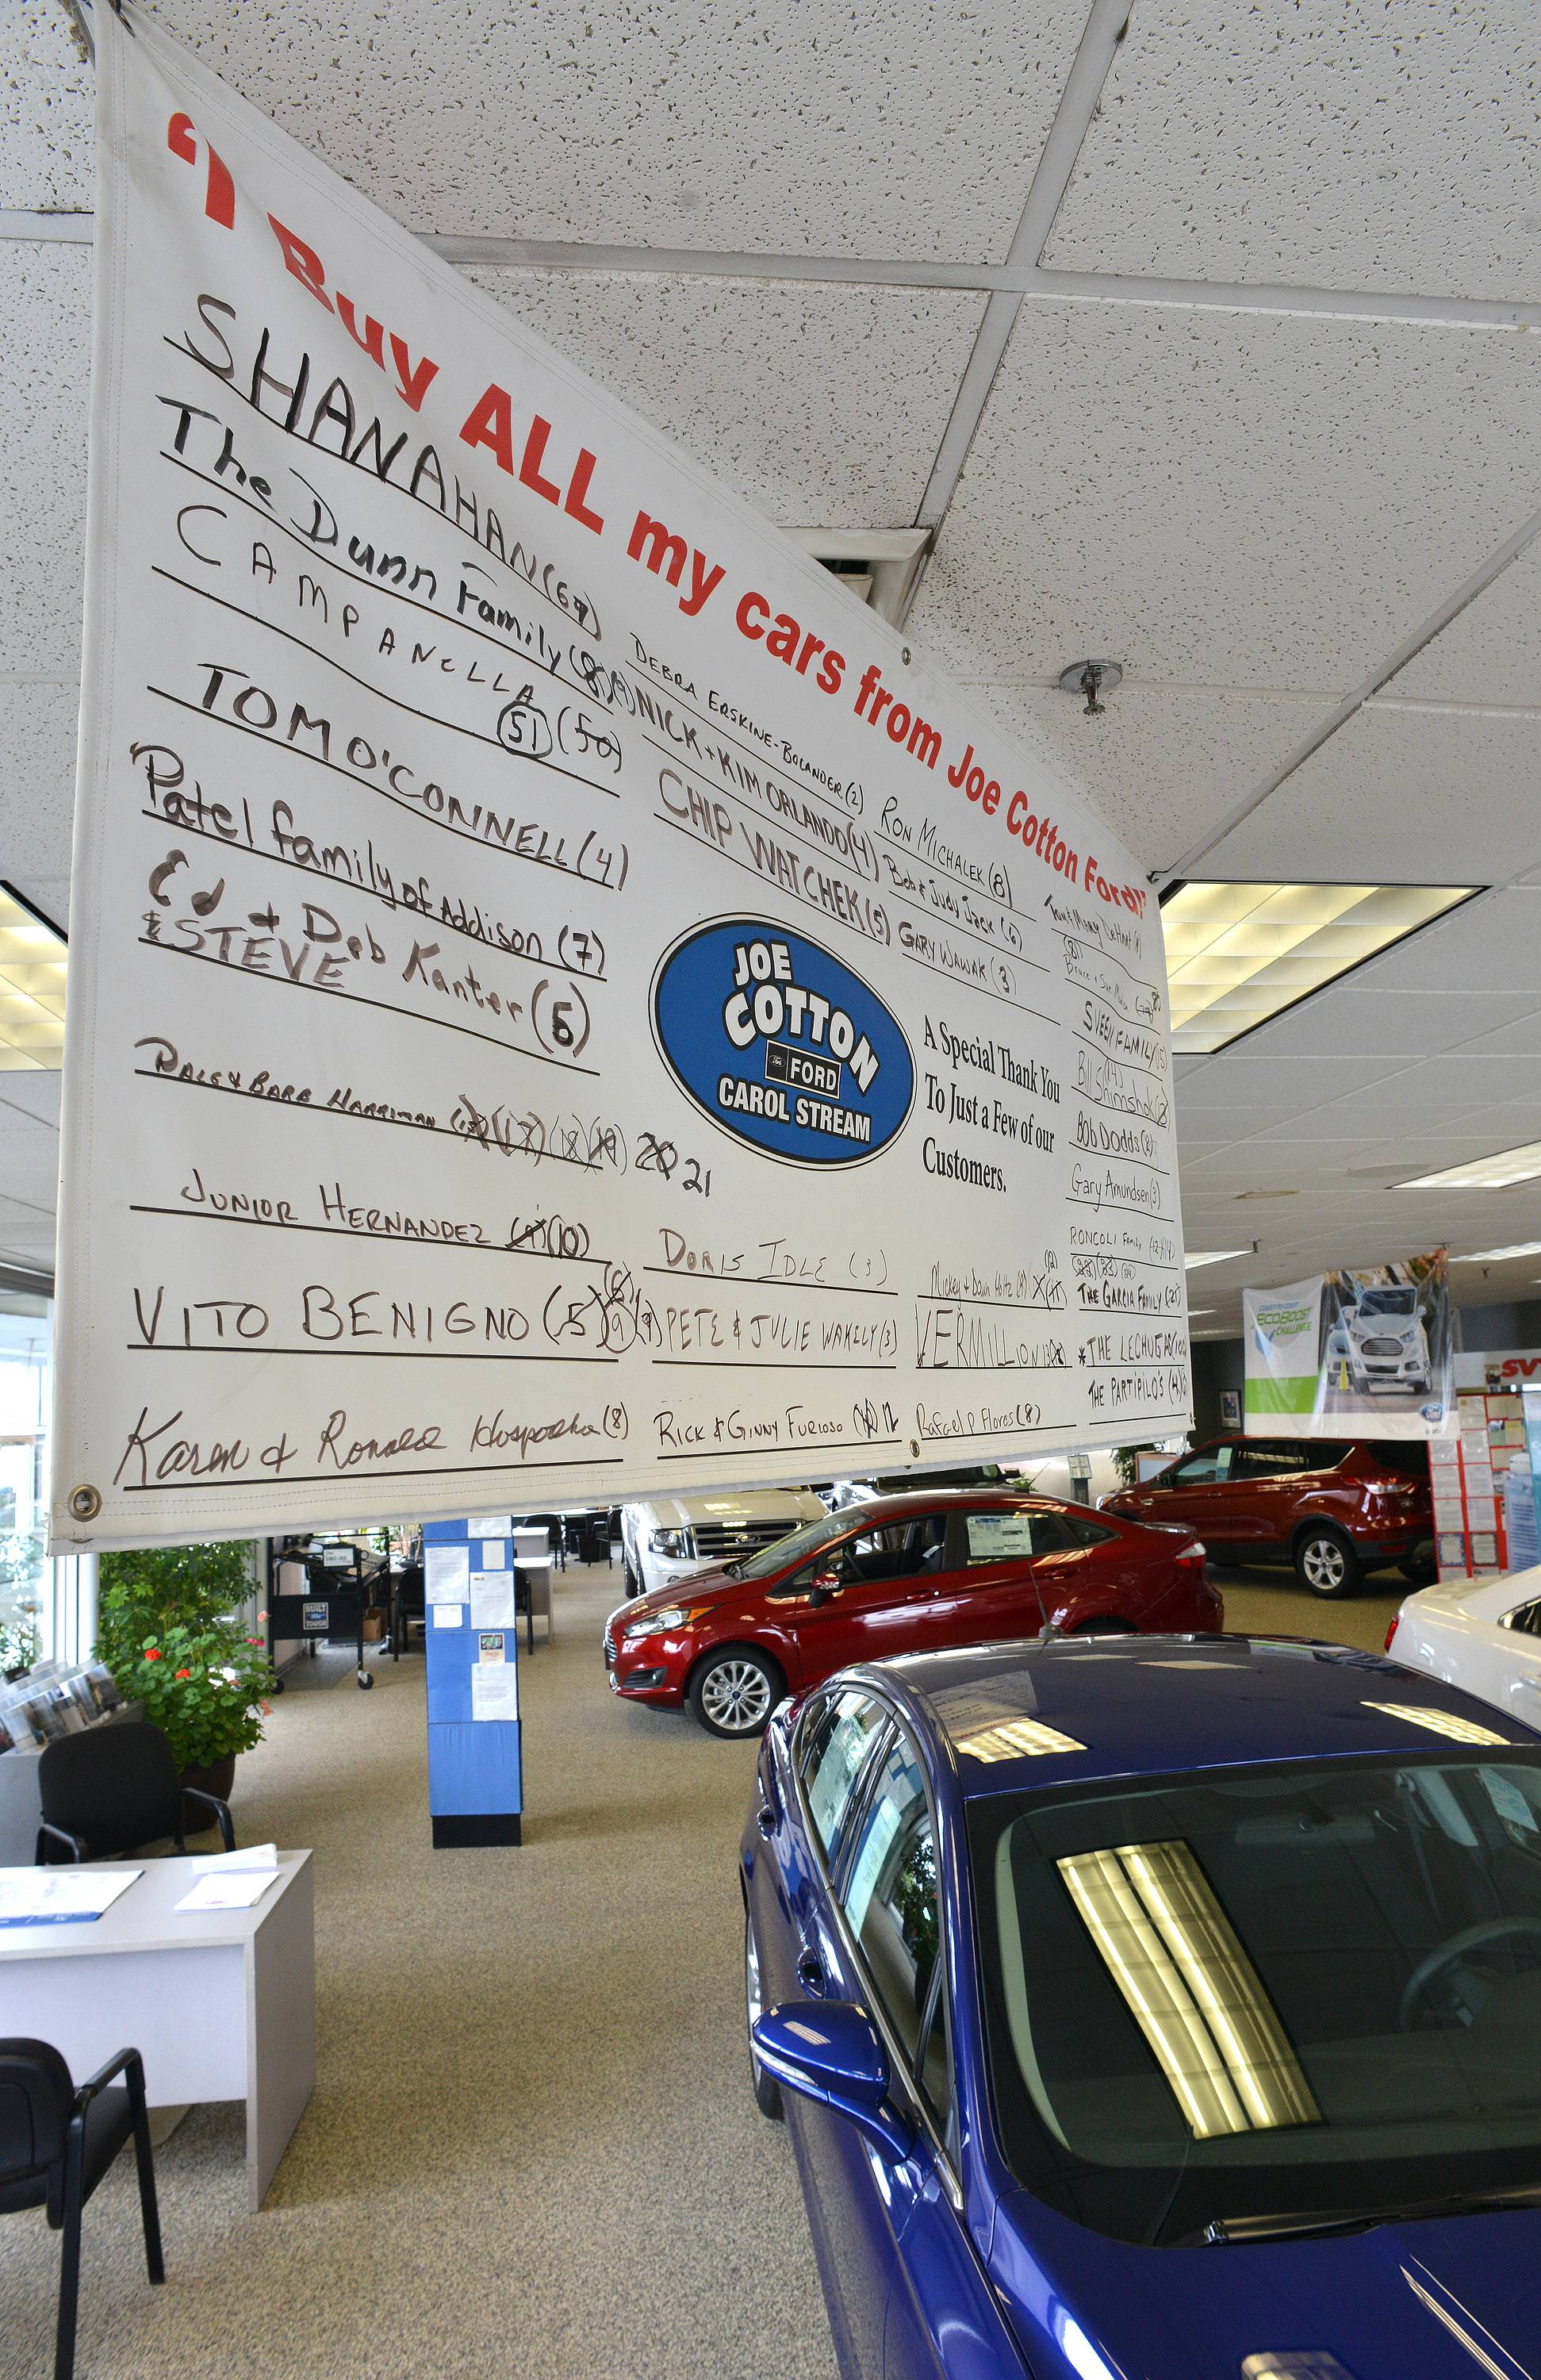 Joe Cotton Ford in Carol Stream honors its repeat customers with banners in the showroom that track how many vehicles they've purchased.